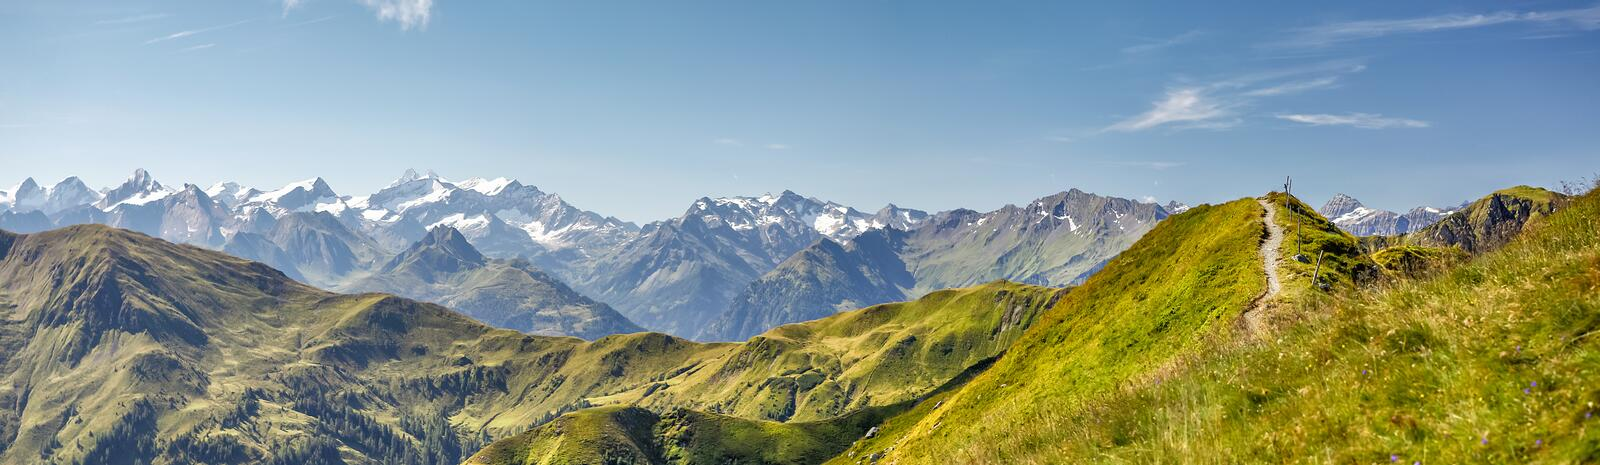 Sommer Wandern Panorama | © Christian Woeckinger